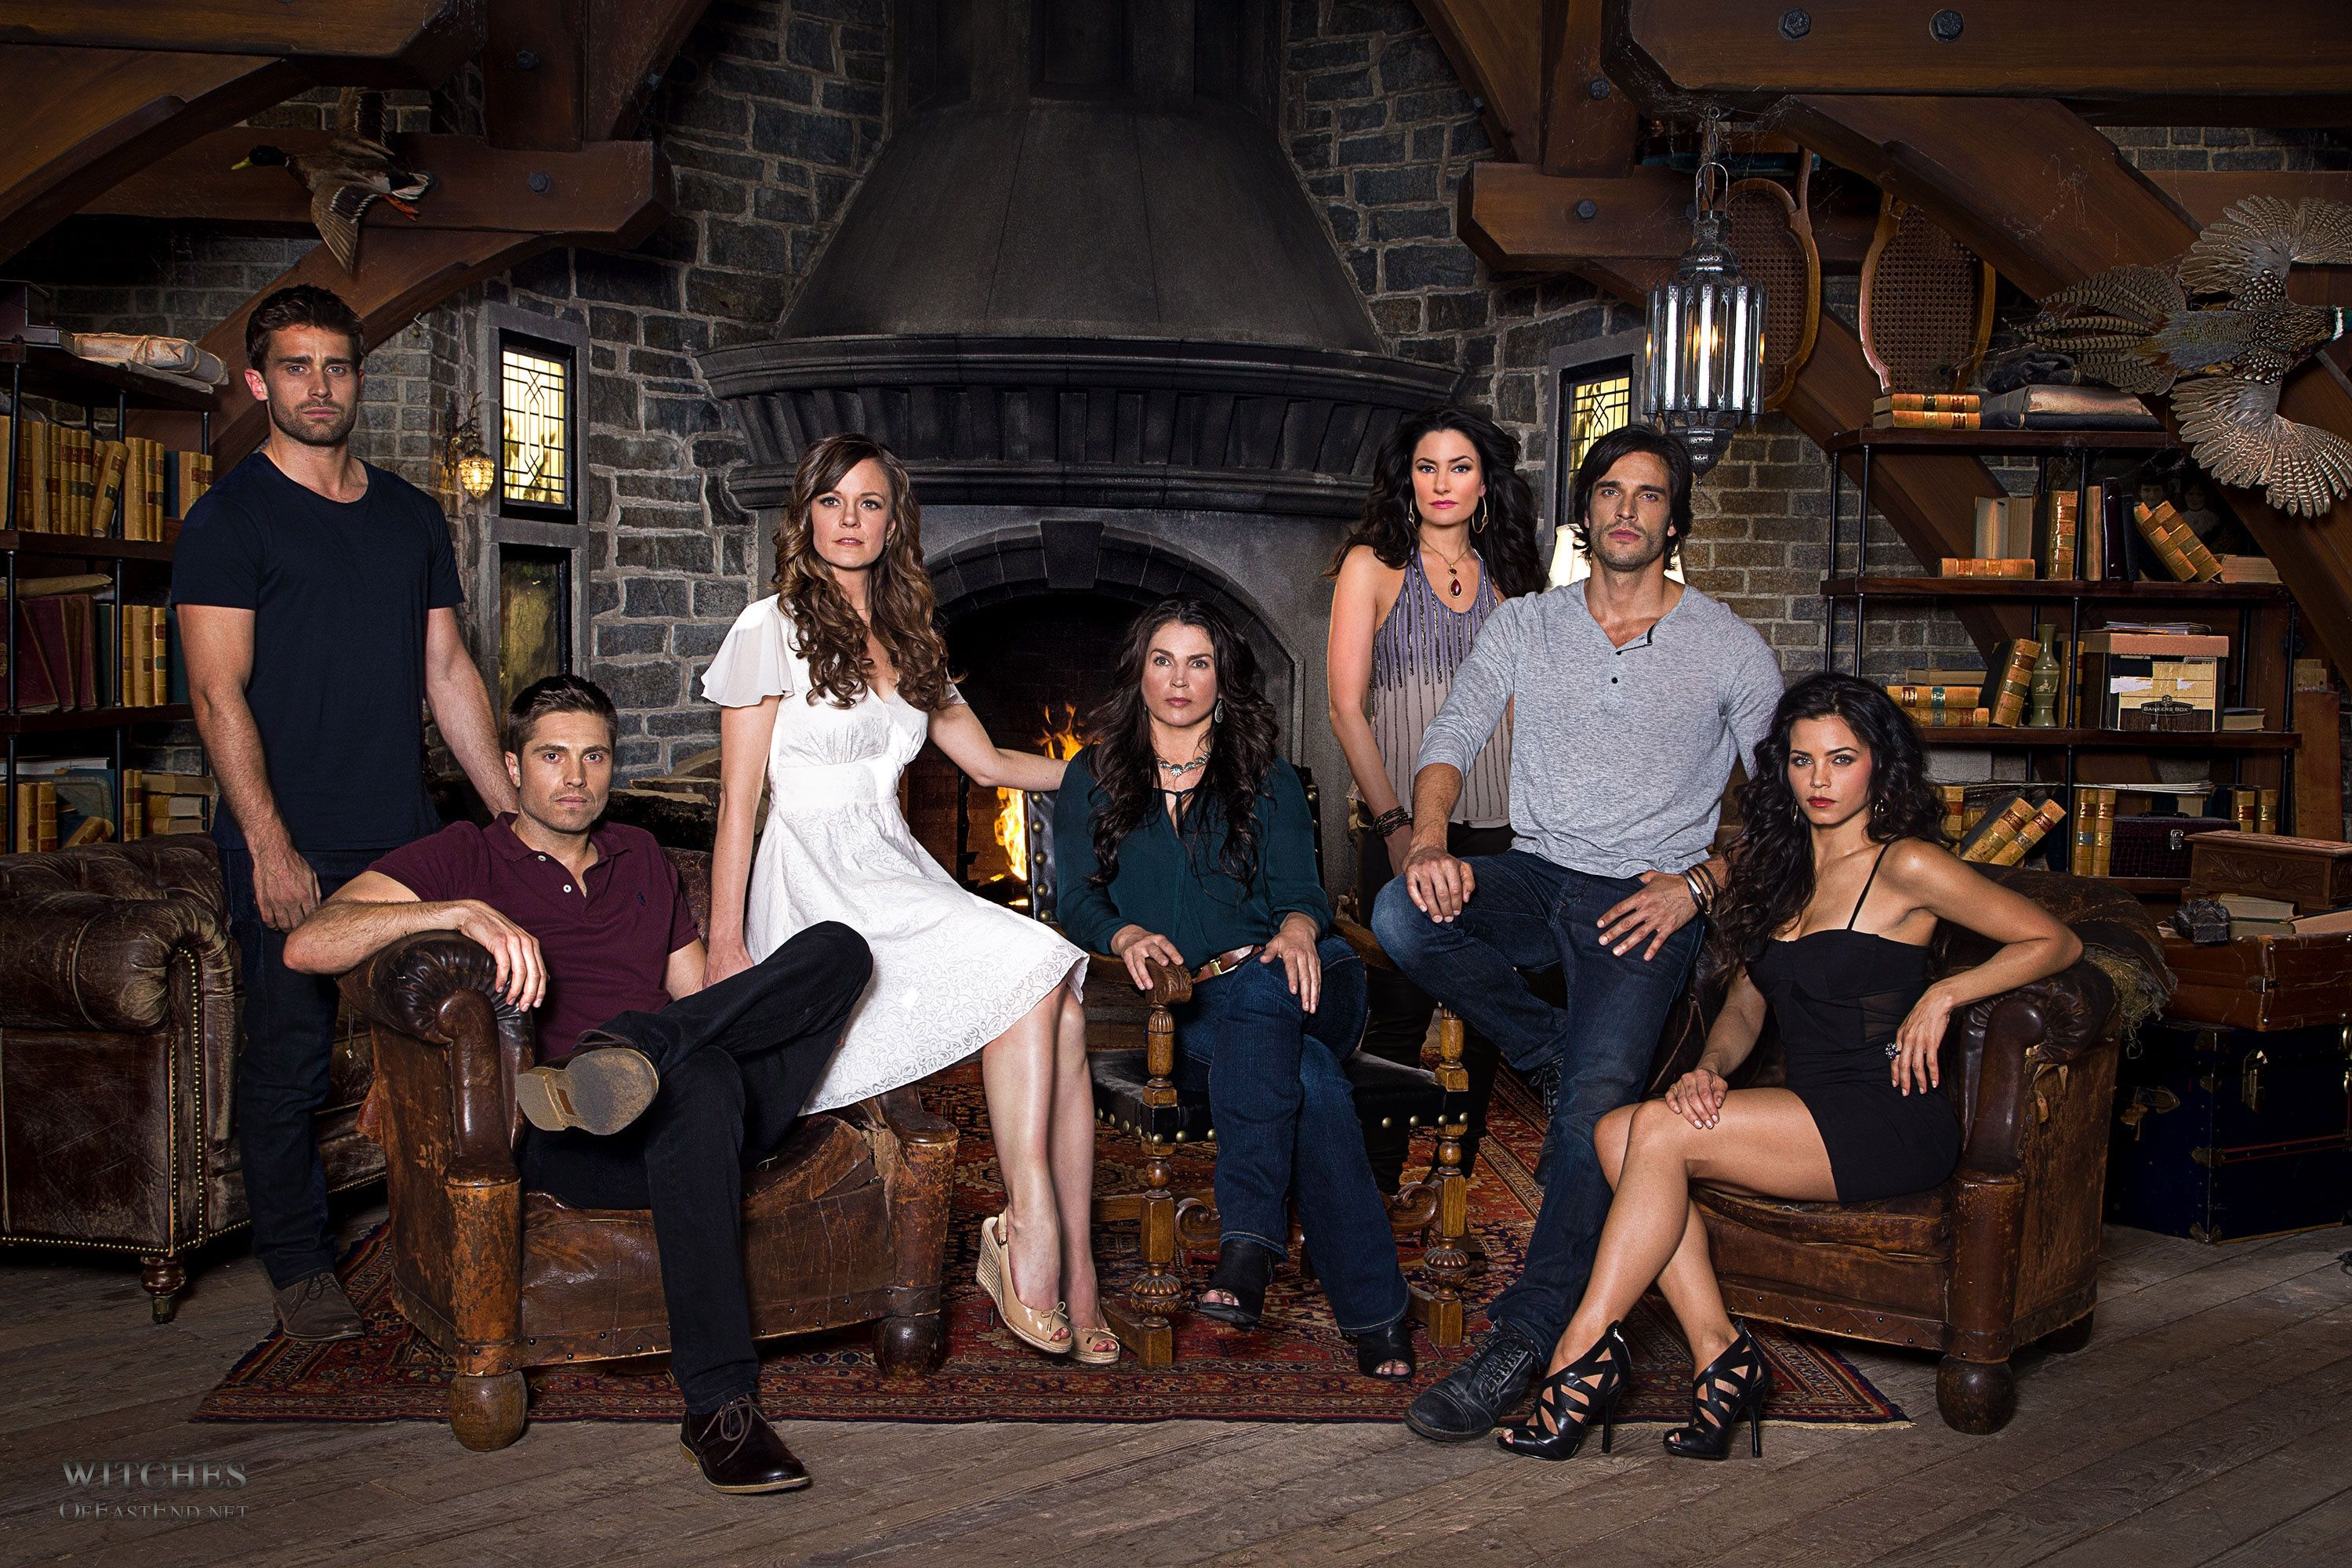 Witches Of East End Season 2 Cast I Love This Series Serie Fantastique Emission Tv Film